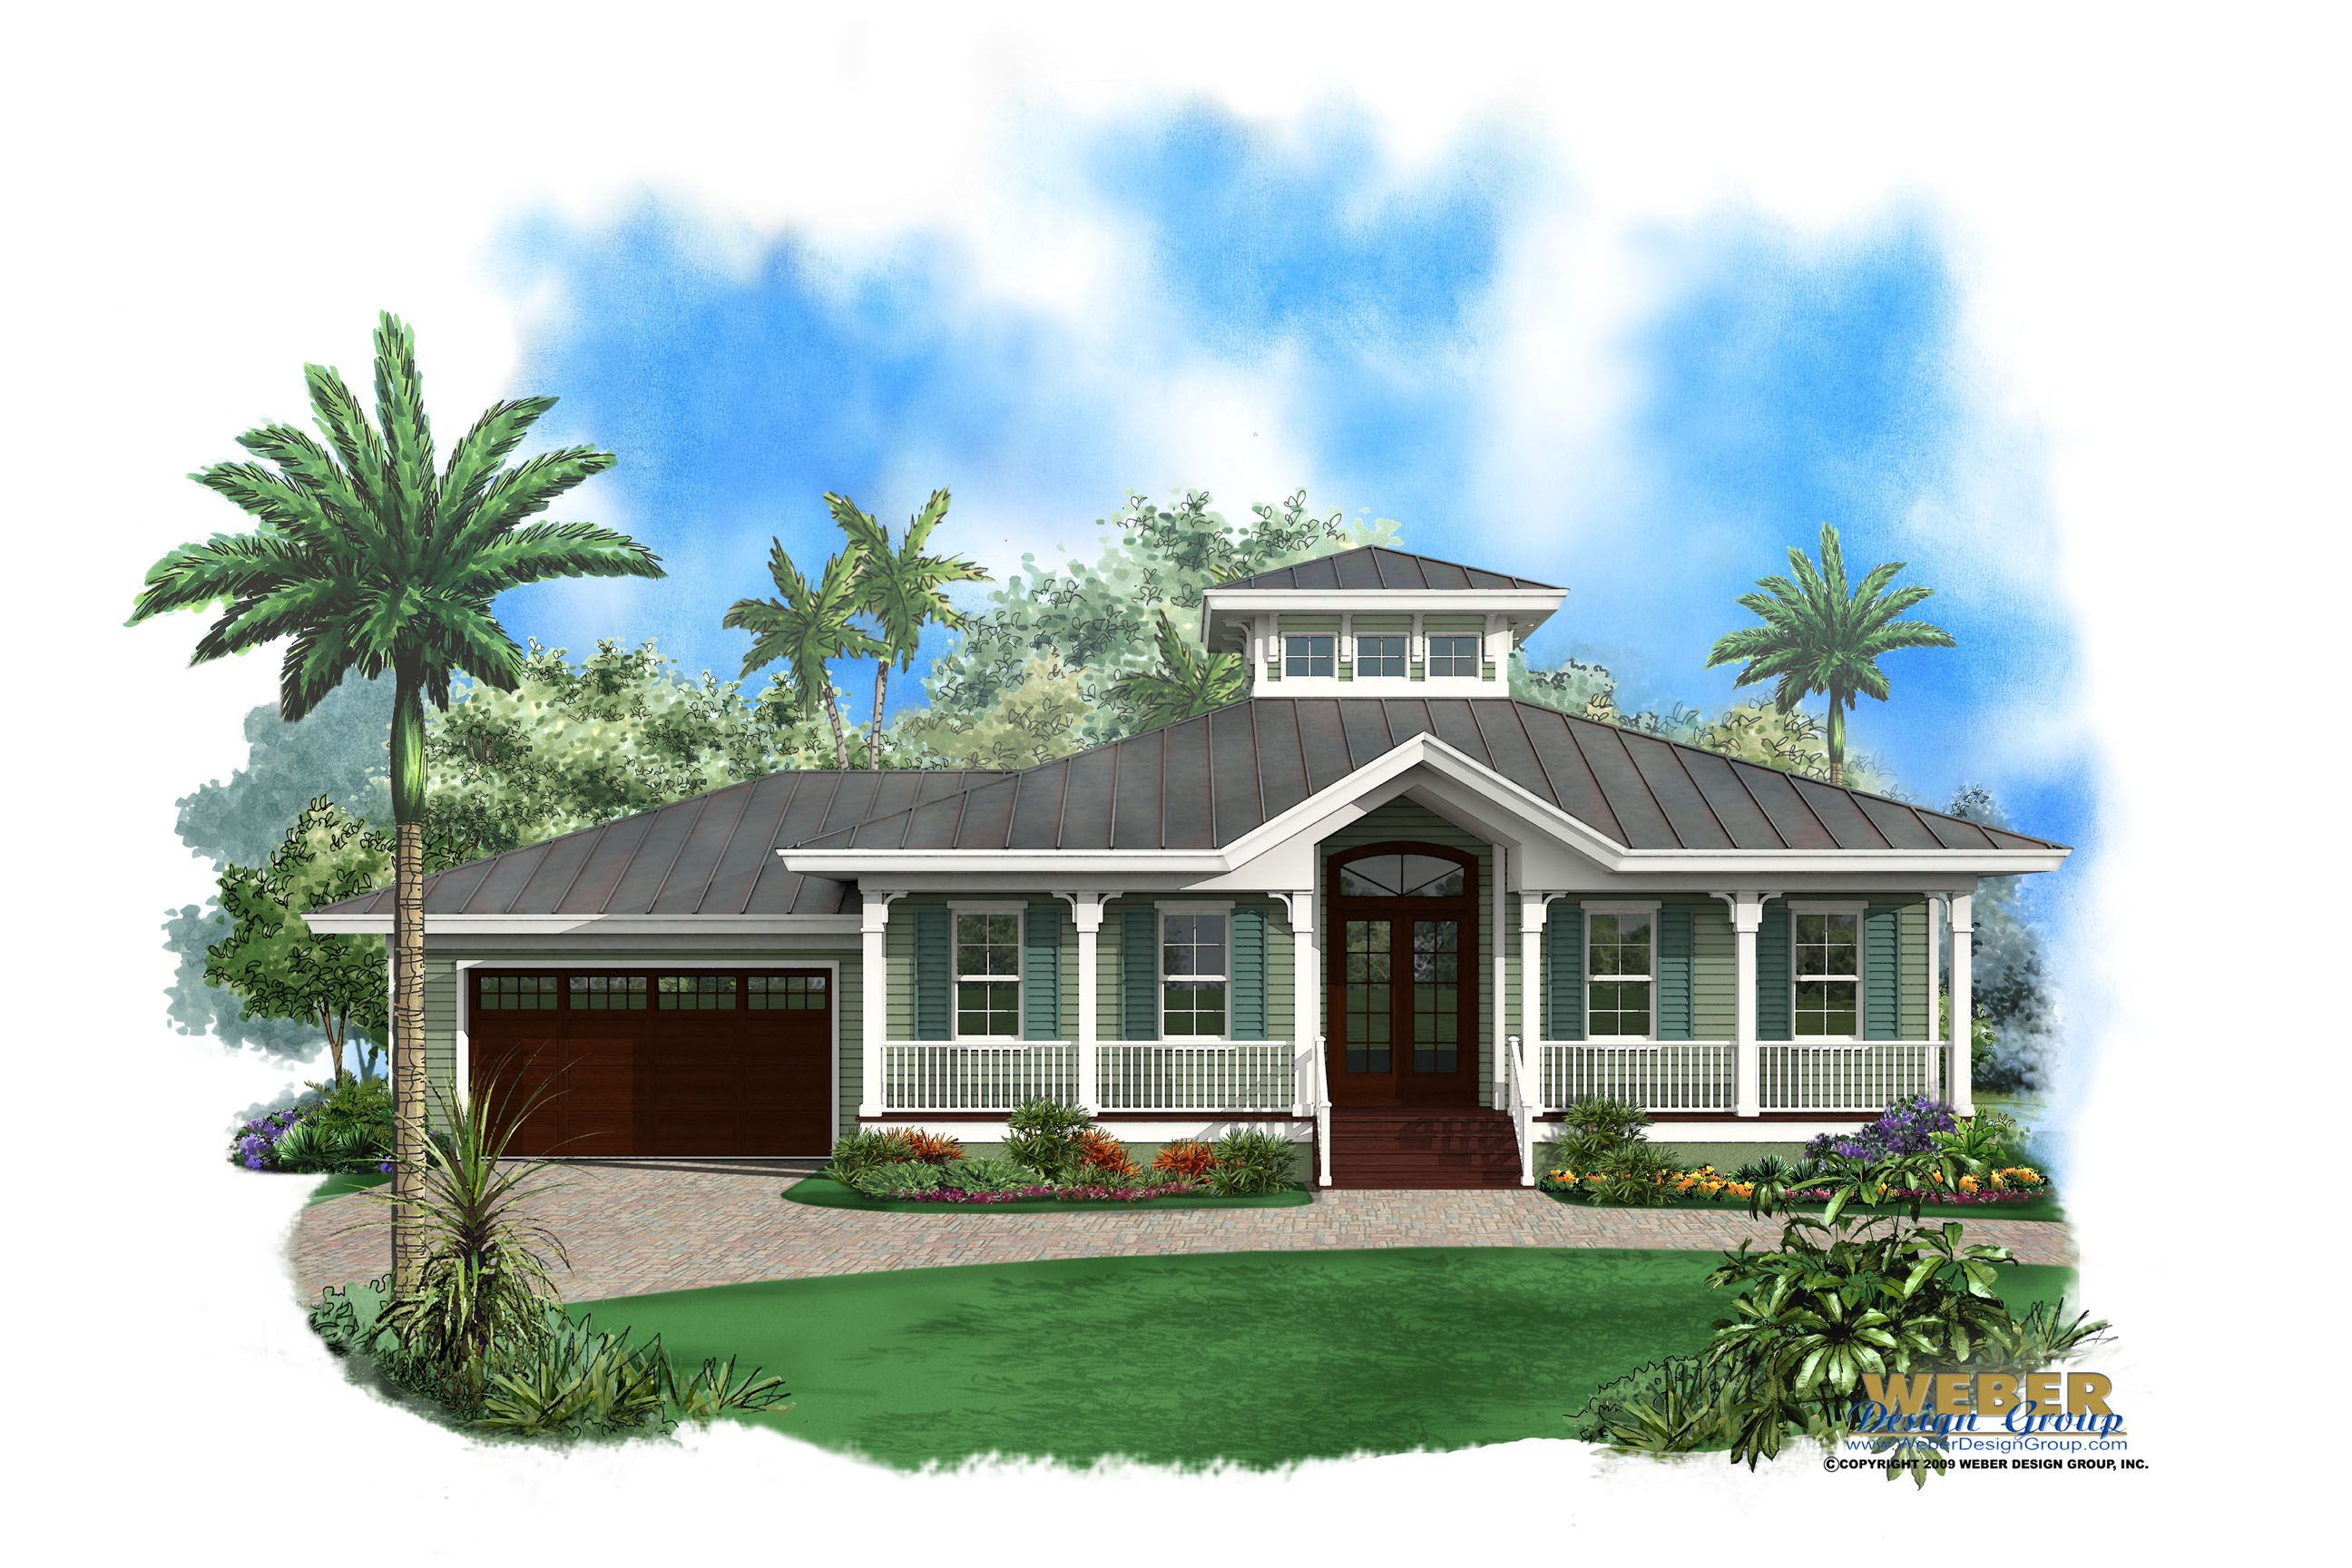 Ambergris Cay Home Plan Olde Florida Cracker Style House, Covered Porch,  For Coastal U0026 Intercoastal Lot, 2 Car Garage, Pictures U0026 Specs.